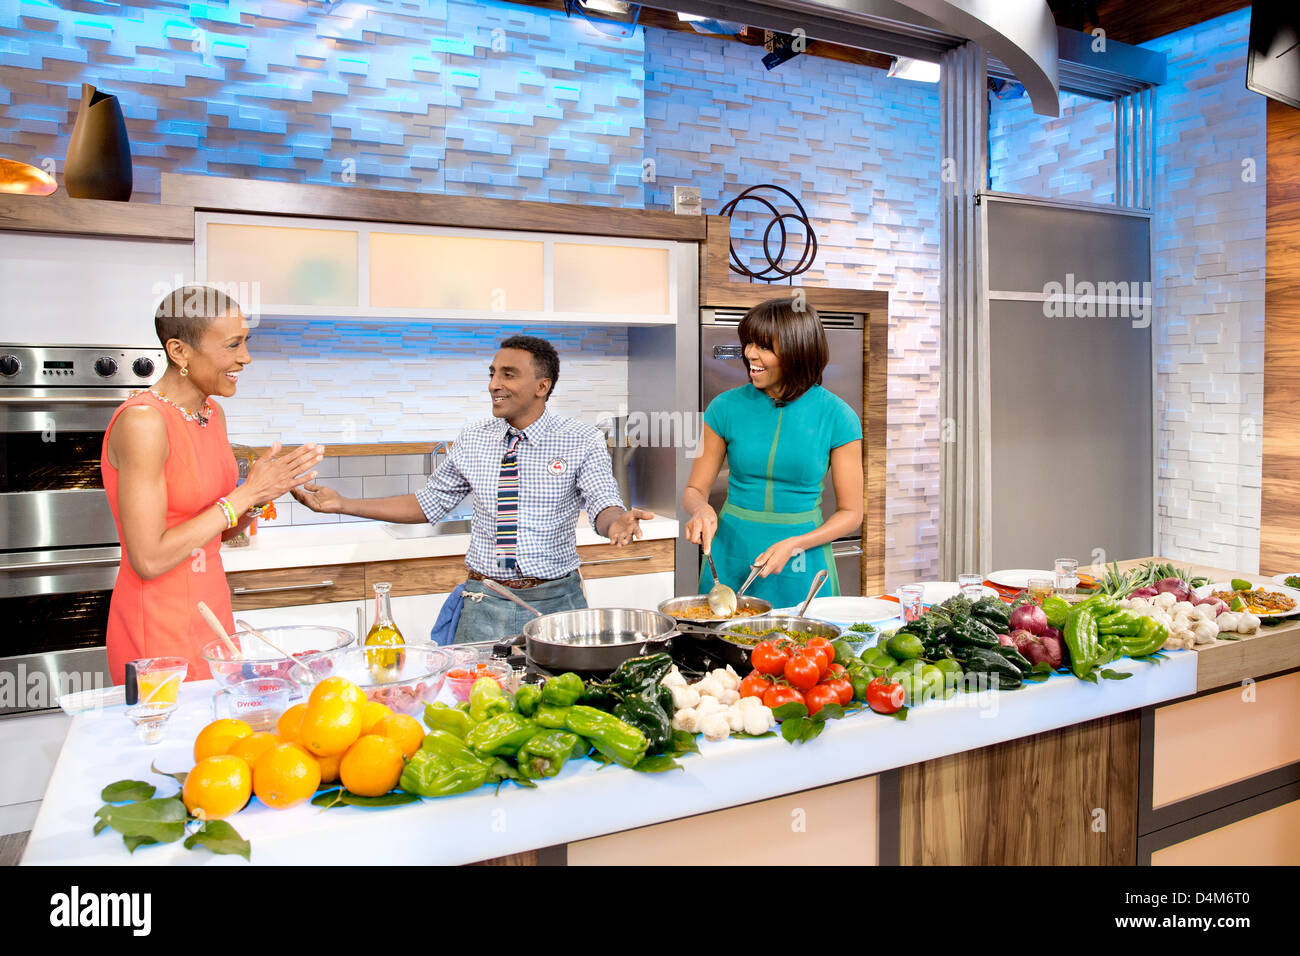 US First Lady Michelle Obama with Good Morning America anchor Robin Roberts and chef Marcus Samuelsson participate - Stock Image